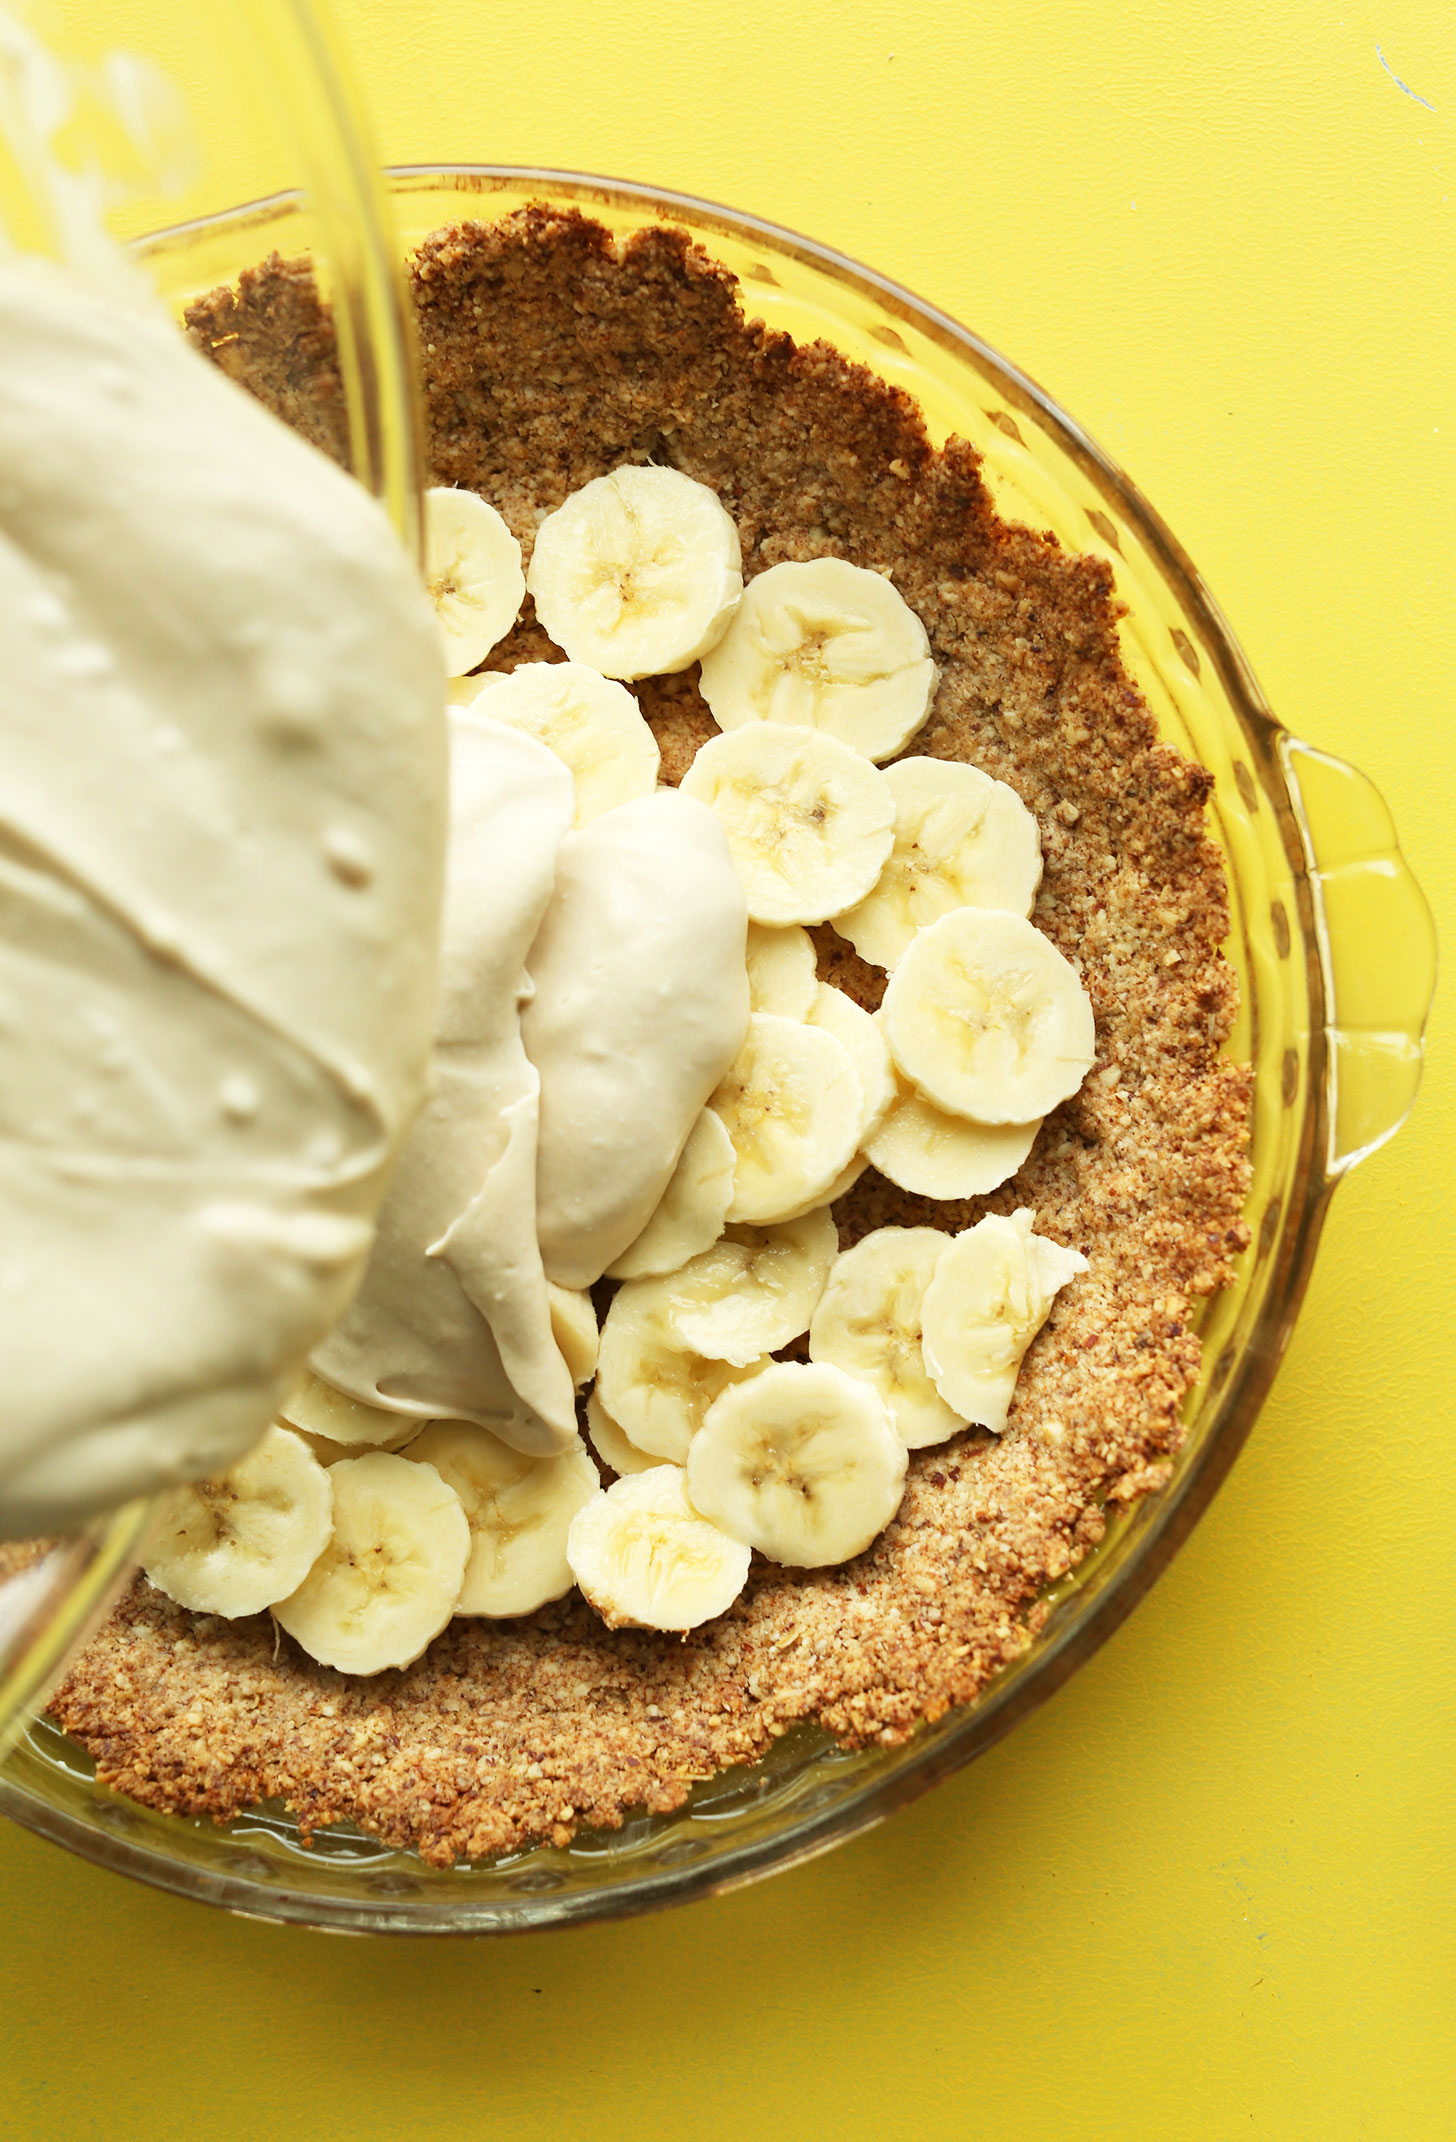 Pouring filling over the crust and banana layers for our gluten-free vegan Banana Cream Pie